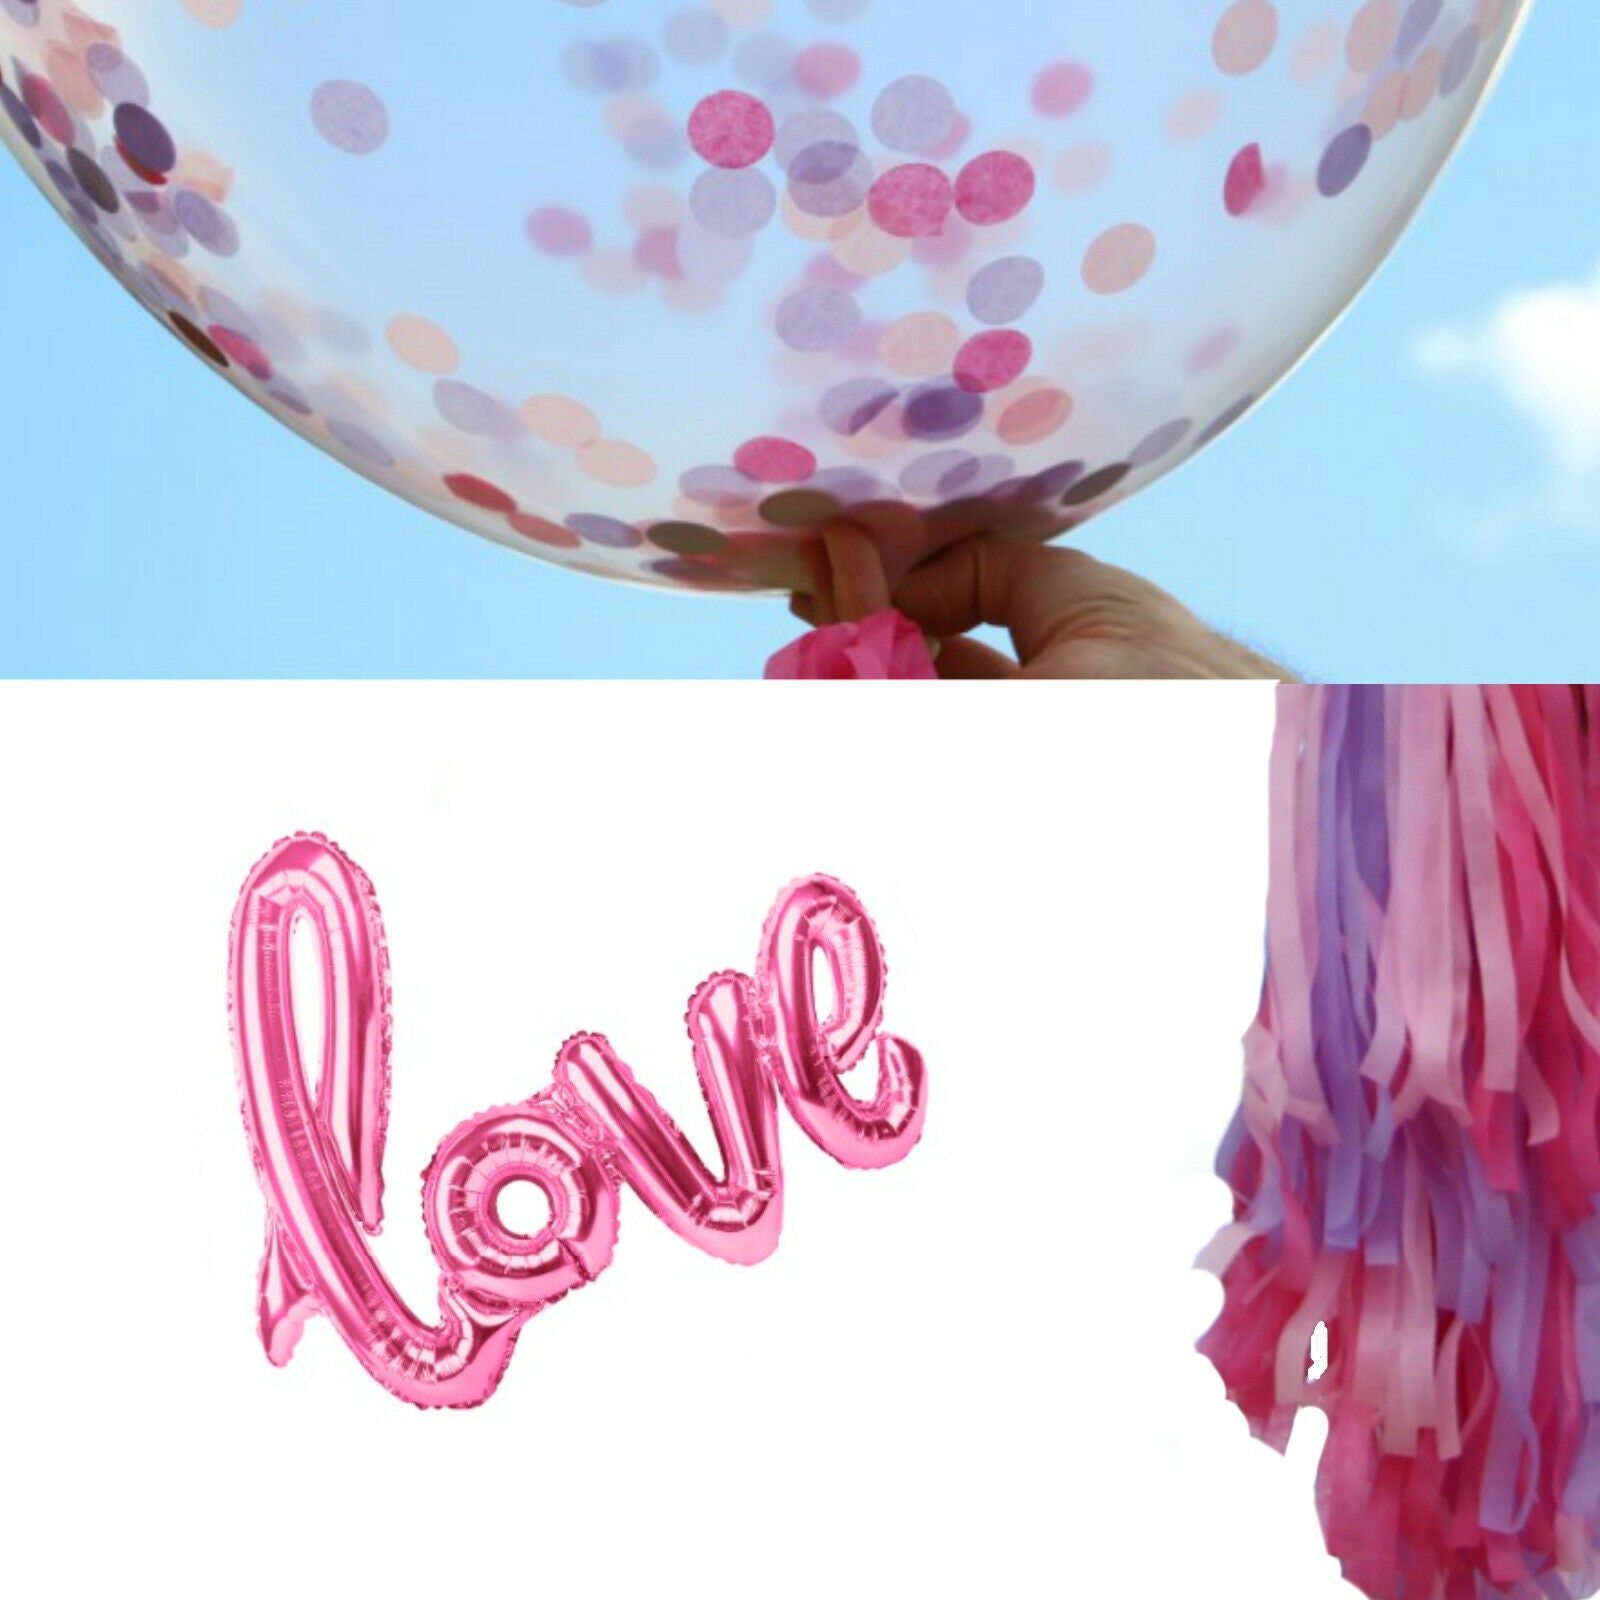 Pink Love Balloons - Bridal Shower Decorations, Girl Baby Shower Balloons